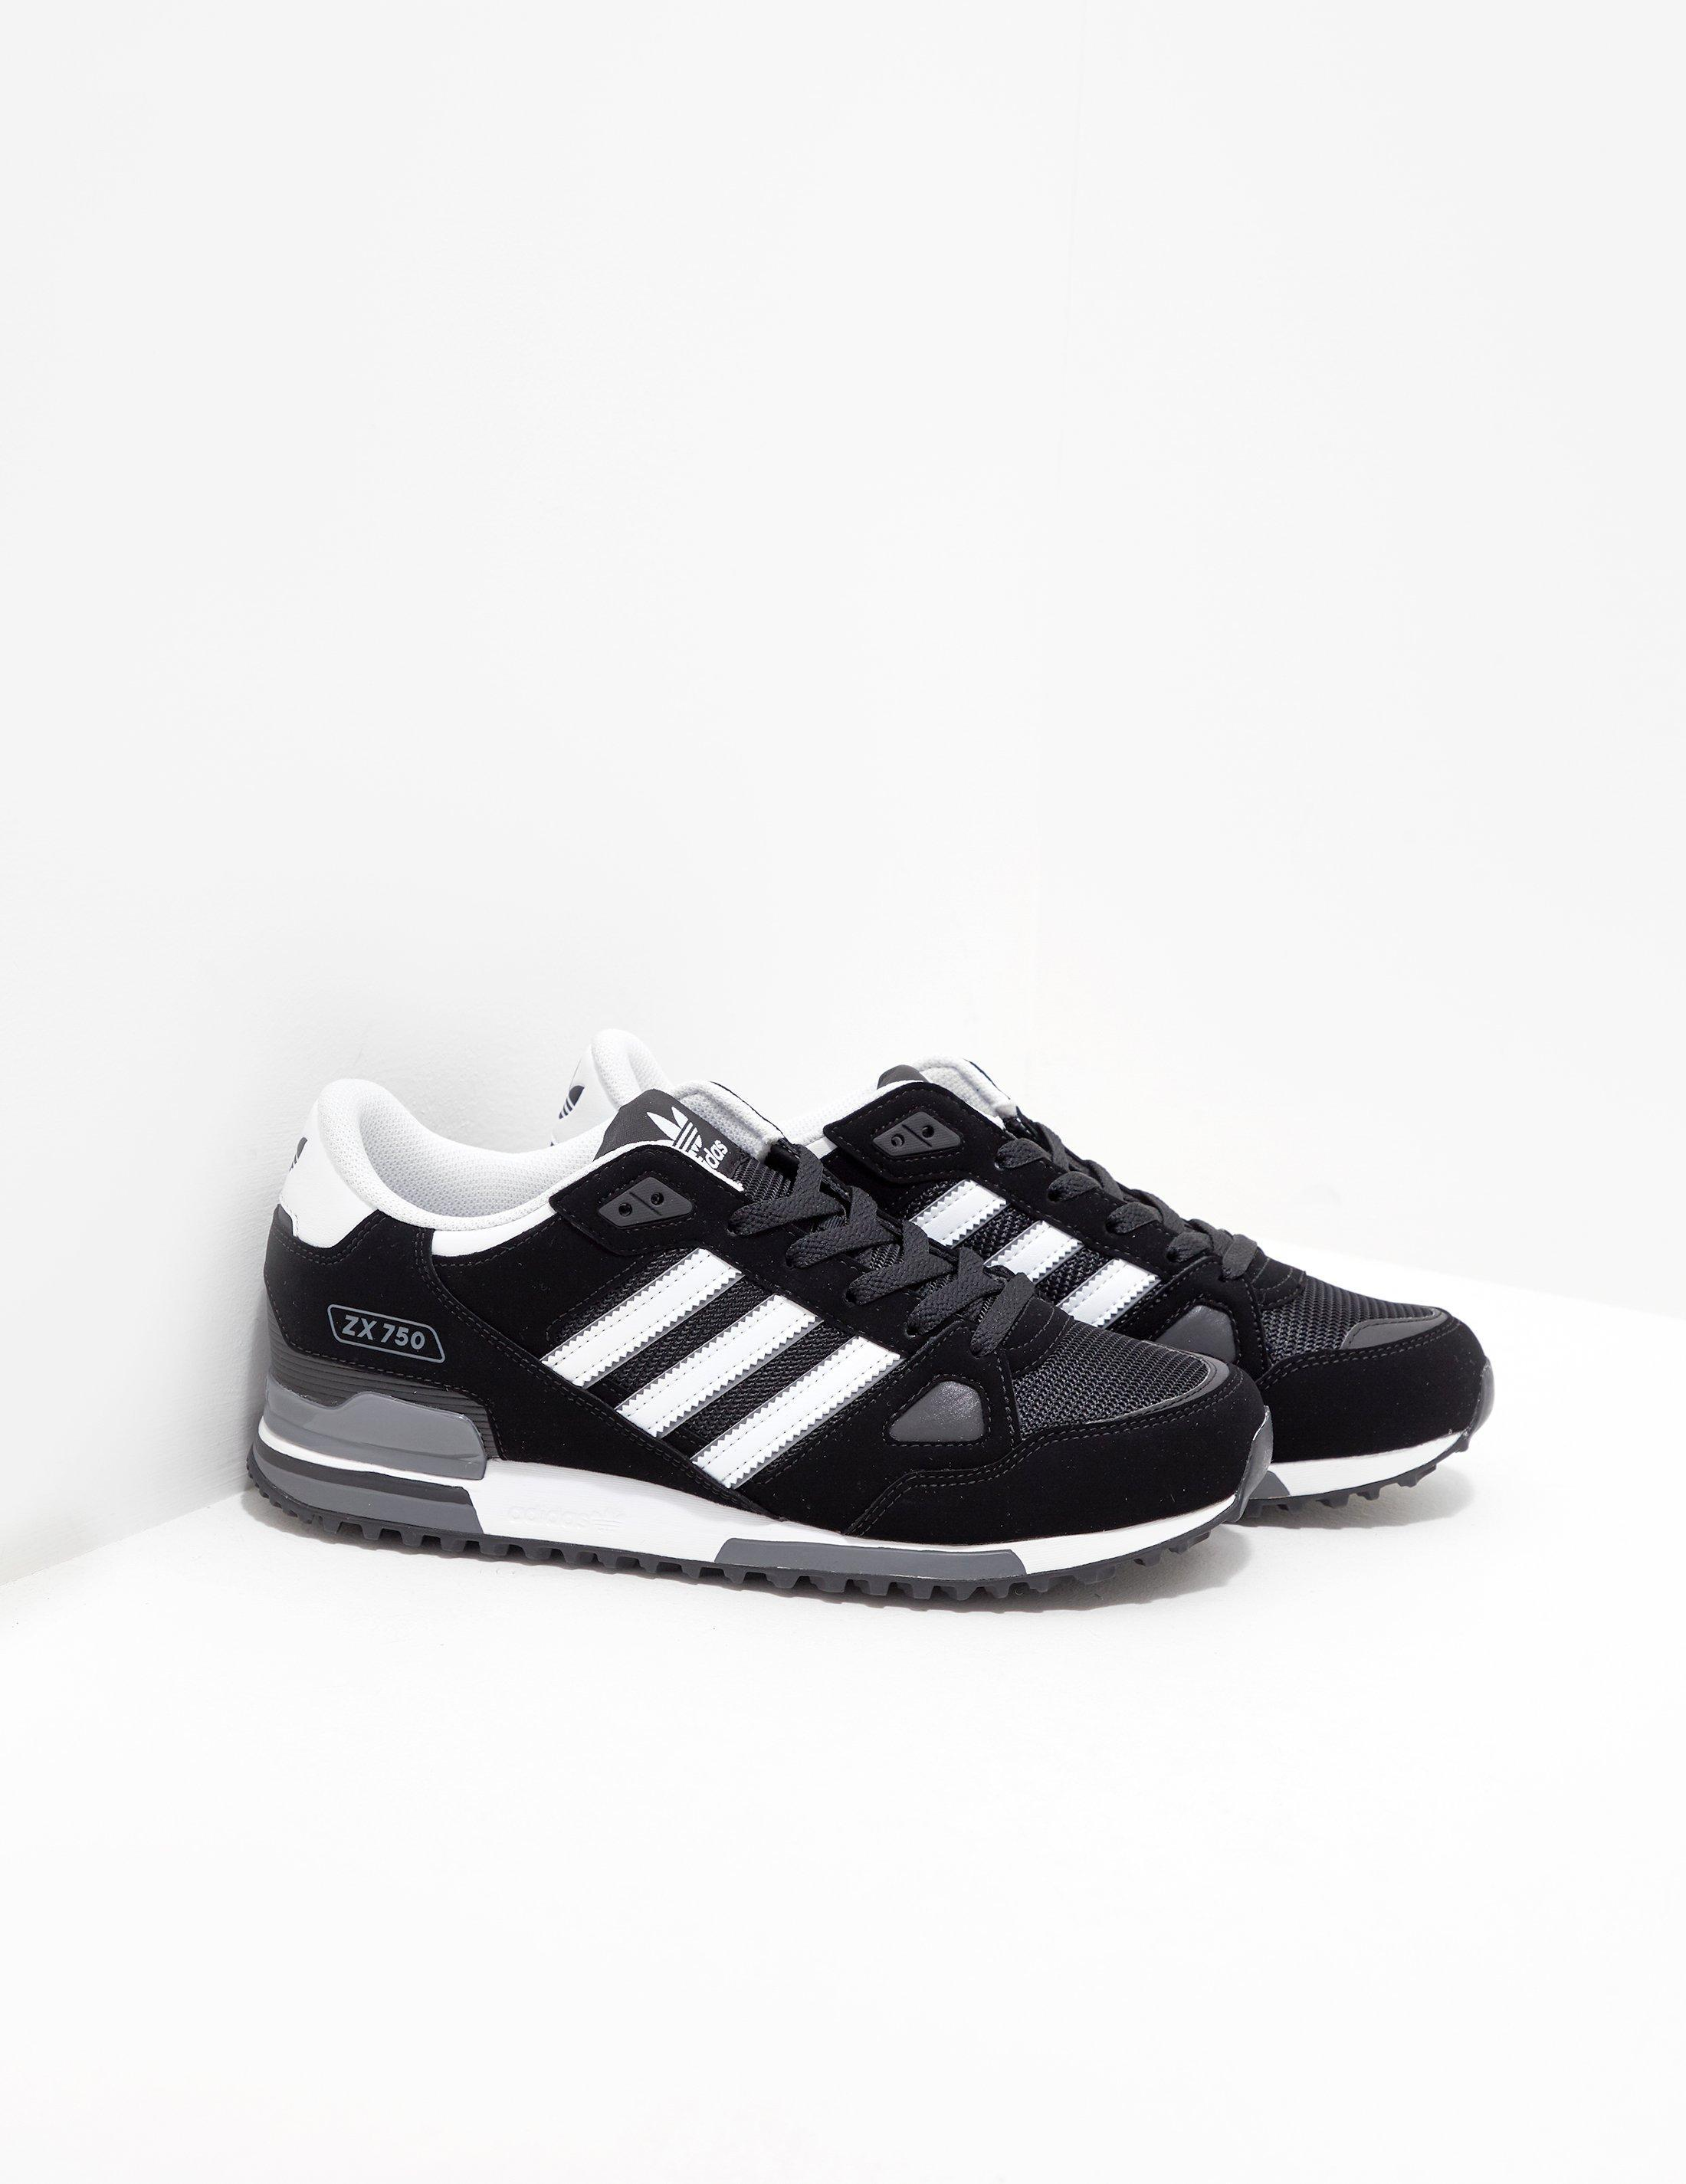 46a2ca37781b Lyst - adidas Originals Zx 750 - Exclusively To Tessuti Black in ...